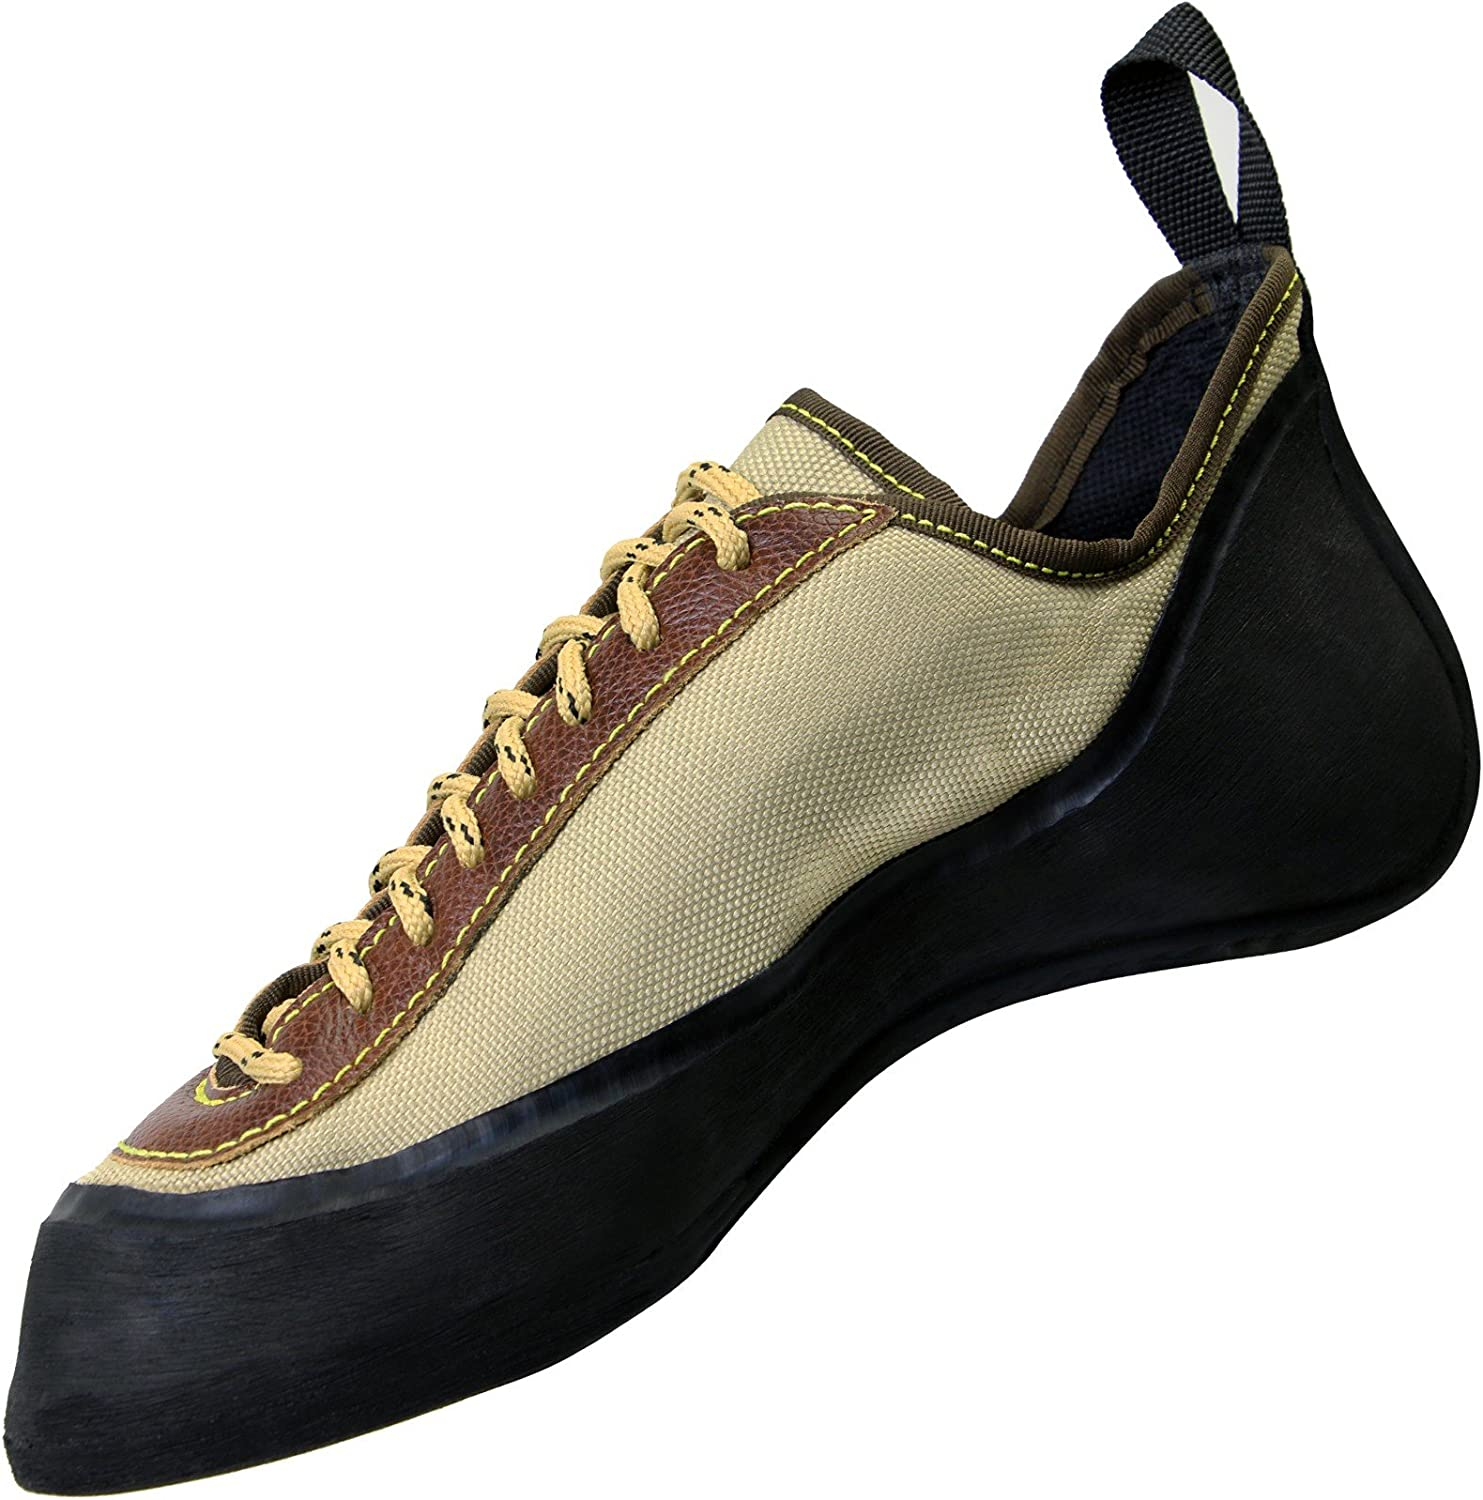 ALPIDEX Leather Climbing shoes with laces for women and men symmetrical available in sizes 36-49